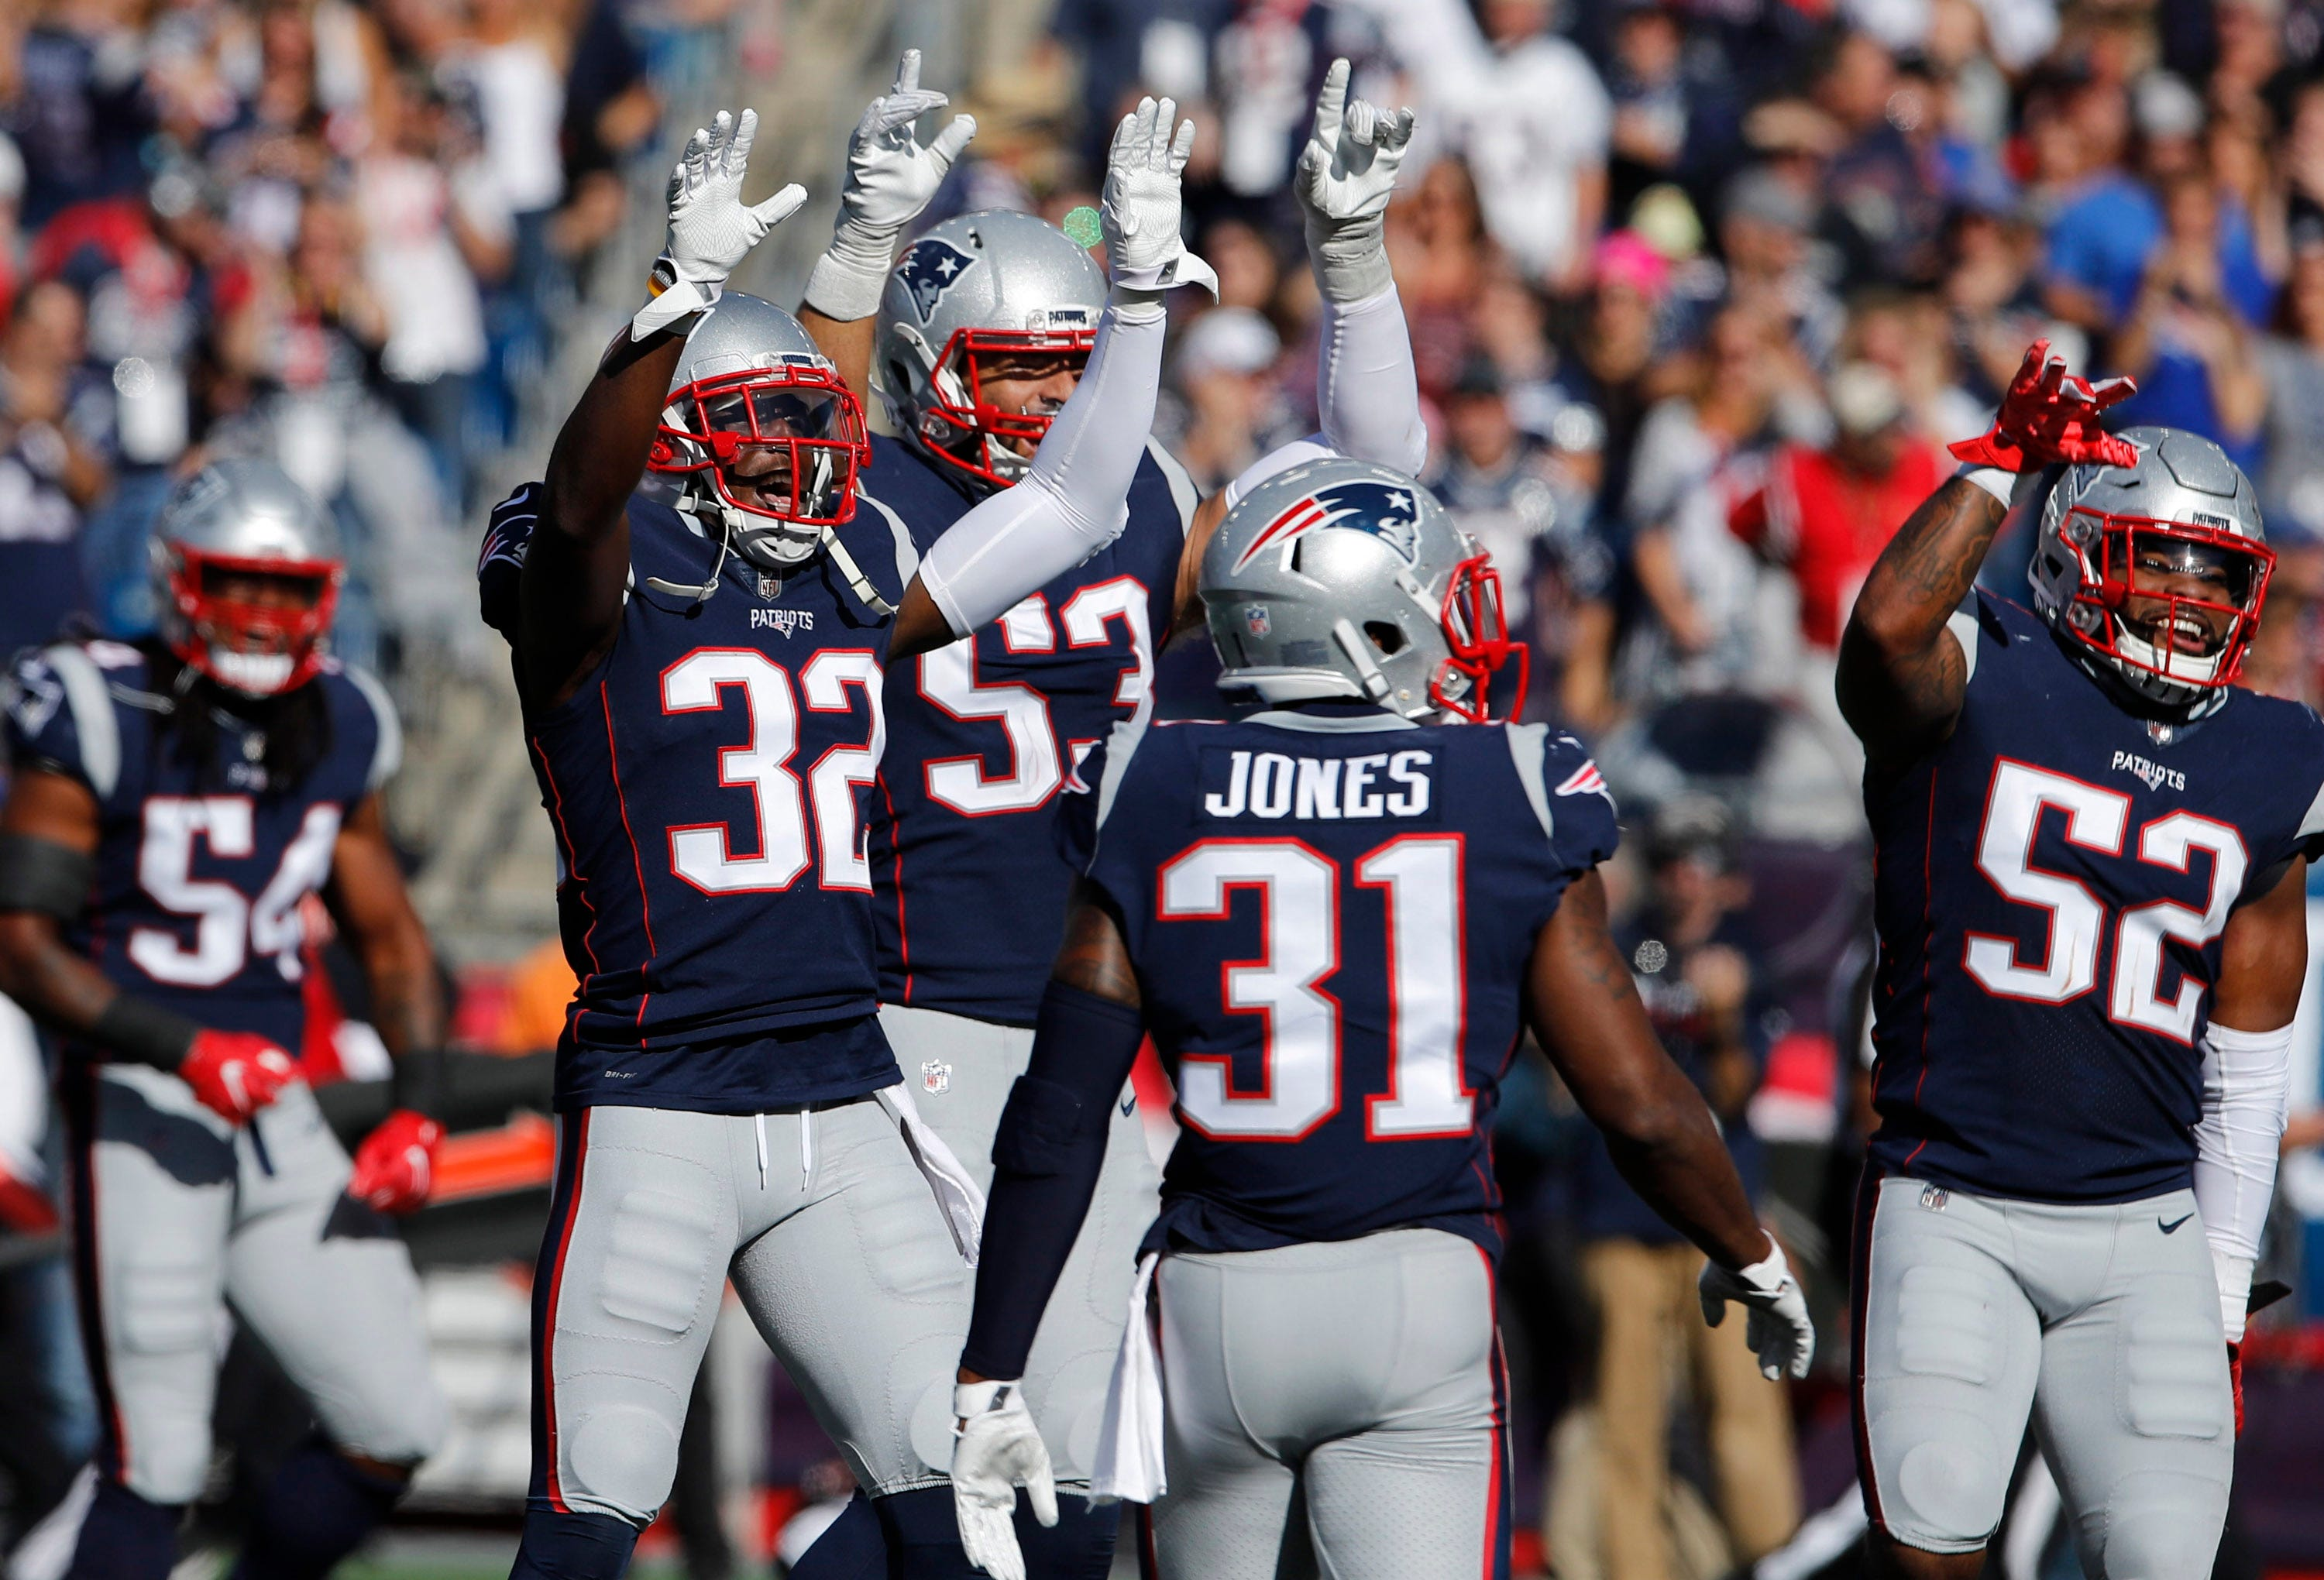 Nfl Power Rankings Patriots Silence Their Haters Steelers Struggle